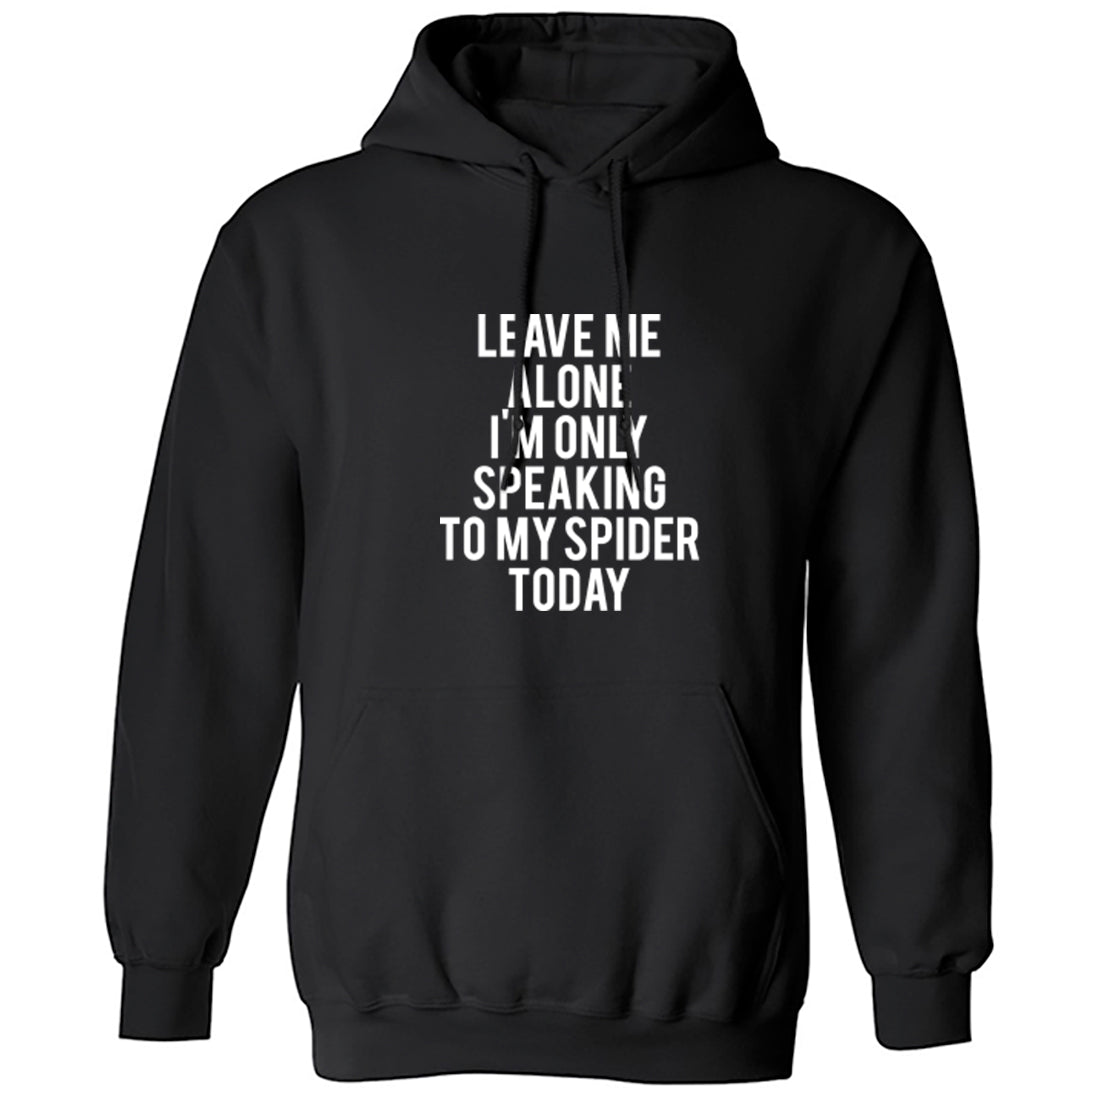 Leave Me Alone I'm Only Speaking To My Spider Today Unisex Hoodie K0952 - Illustrated Identity Ltd.